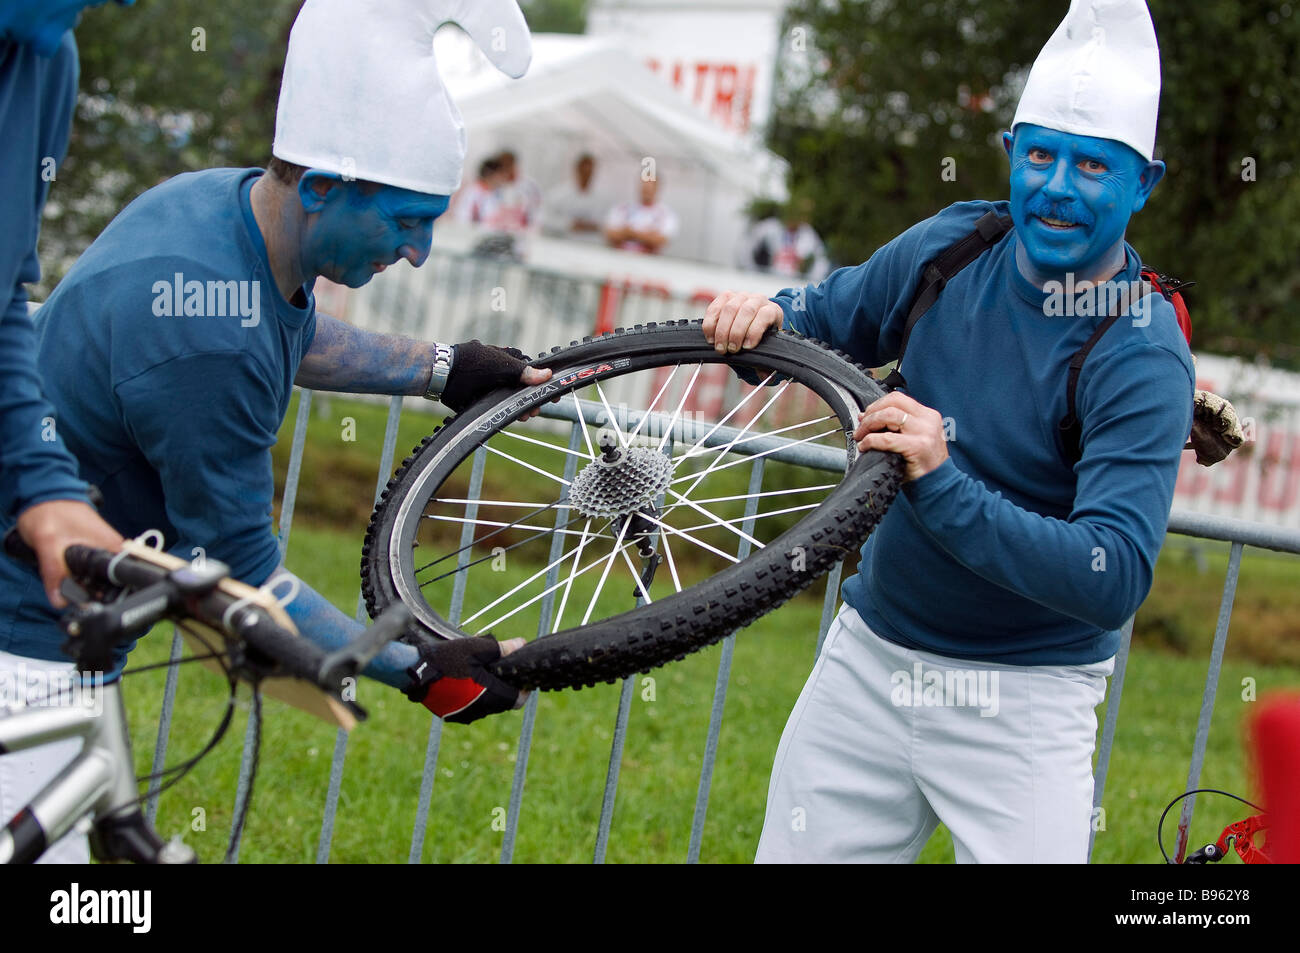 France, Gironde, flat, 9th edition,  puncture, 9th edition, 26th May 2007of the Médocaine, mountain bike race taking Stock Photo